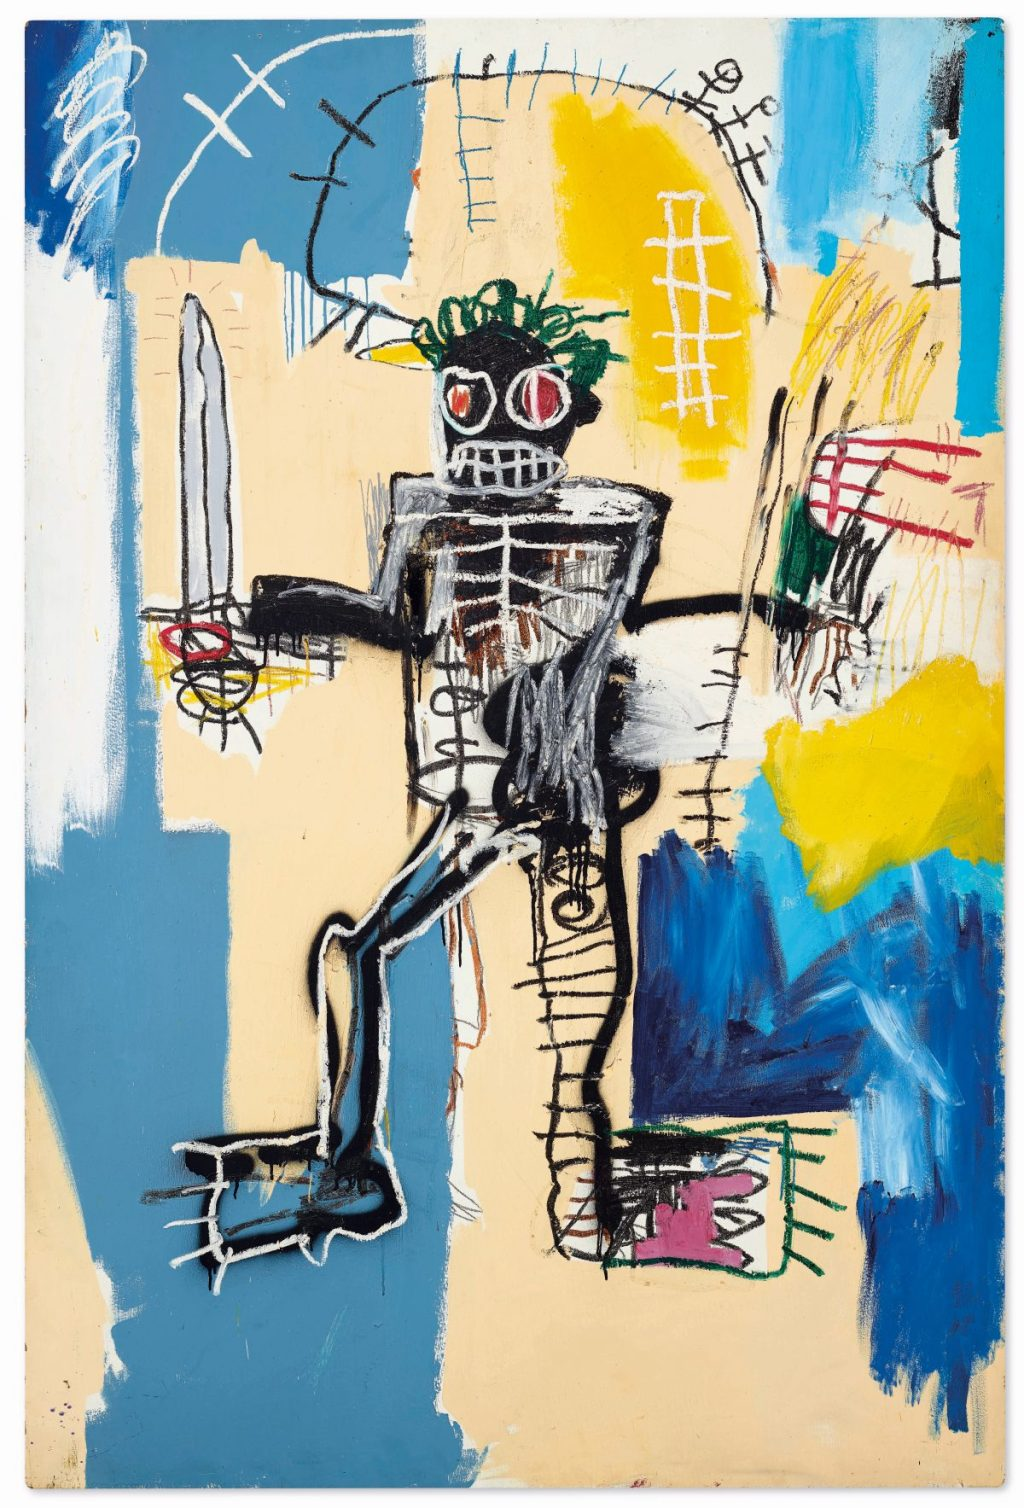 $31 M. Basquiat Poised to Become Most Expensive Western Work Auctioned in Asia